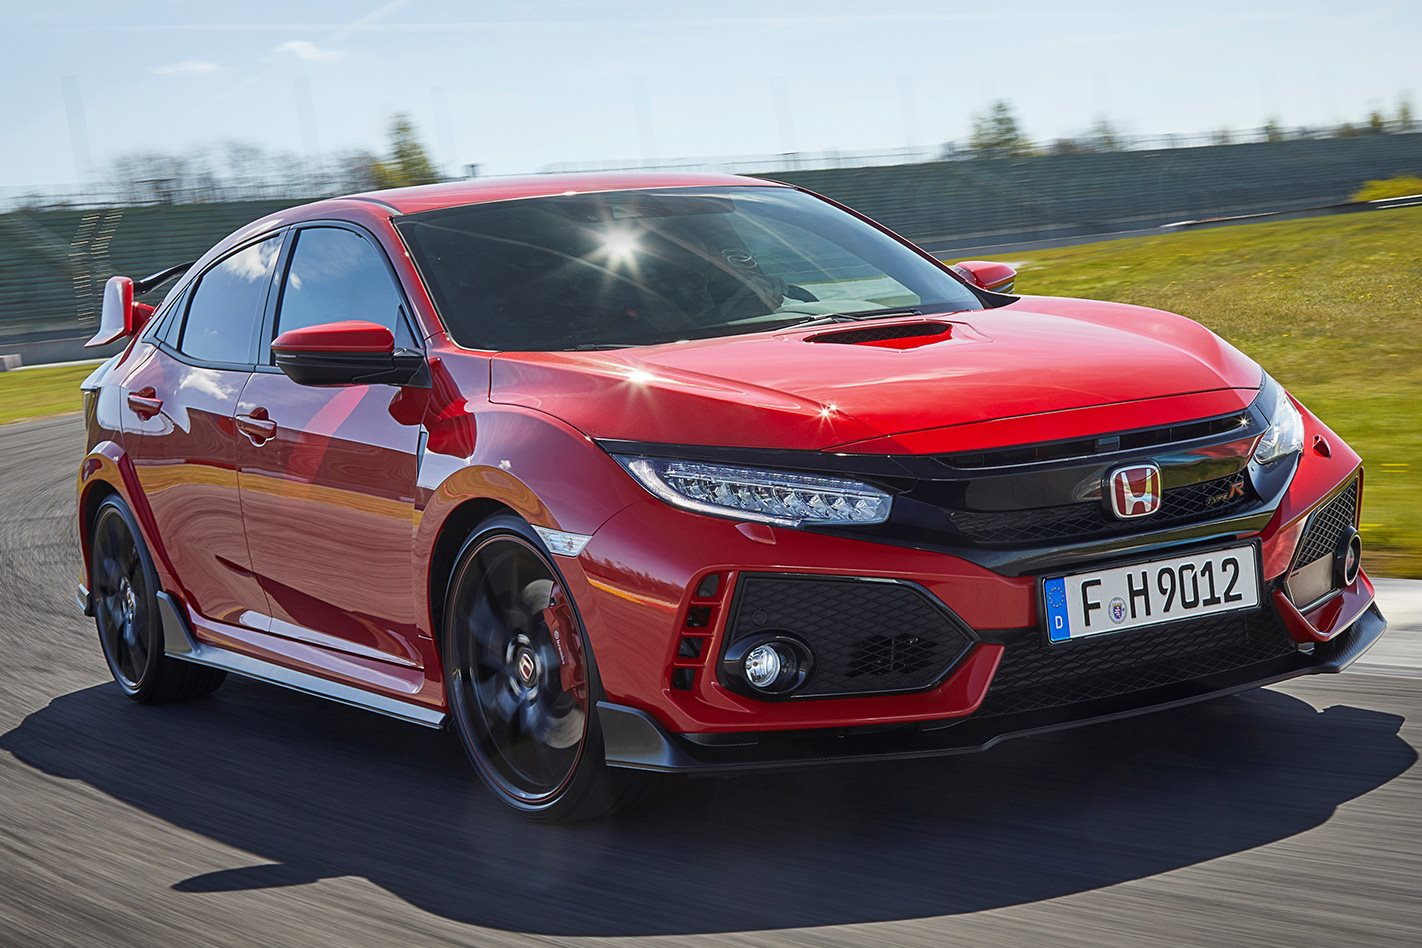 2018 honda civic type r review motor. Black Bedroom Furniture Sets. Home Design Ideas